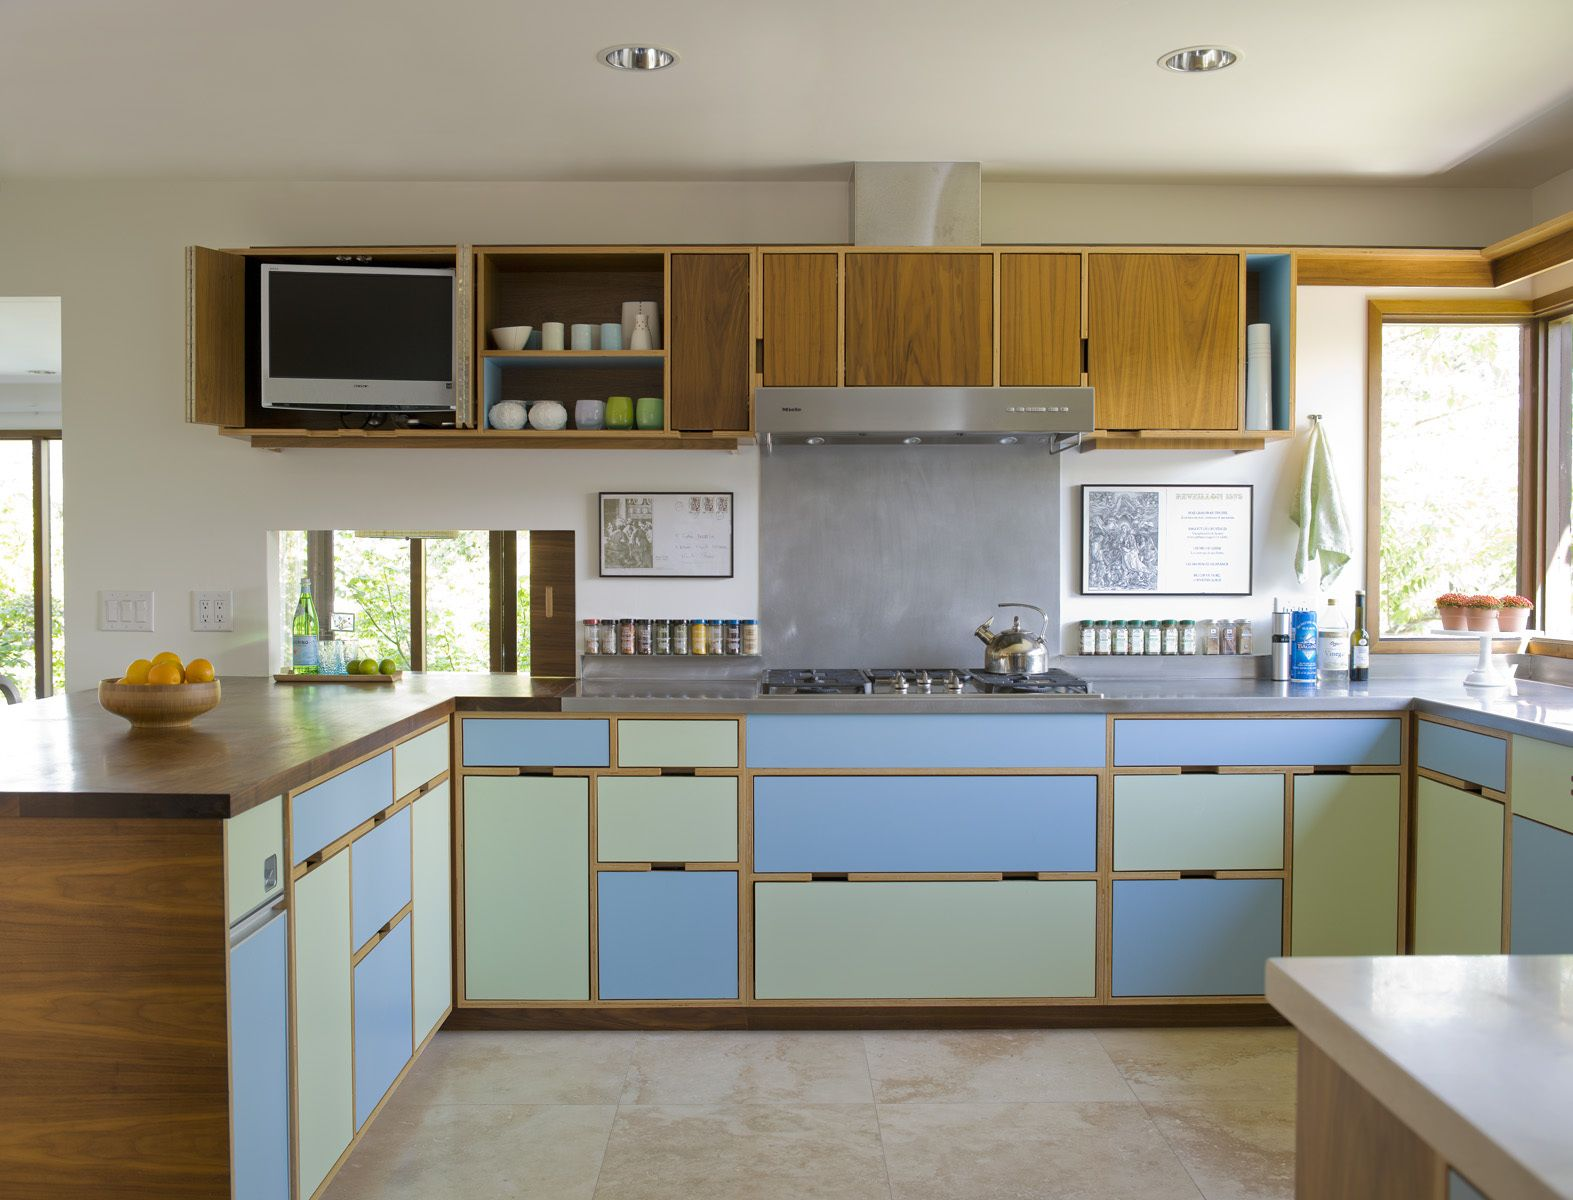 Mid Century Modern Kitchen Within Seward Park Remodel Shed Architecure Amp Design  Seattle Mid